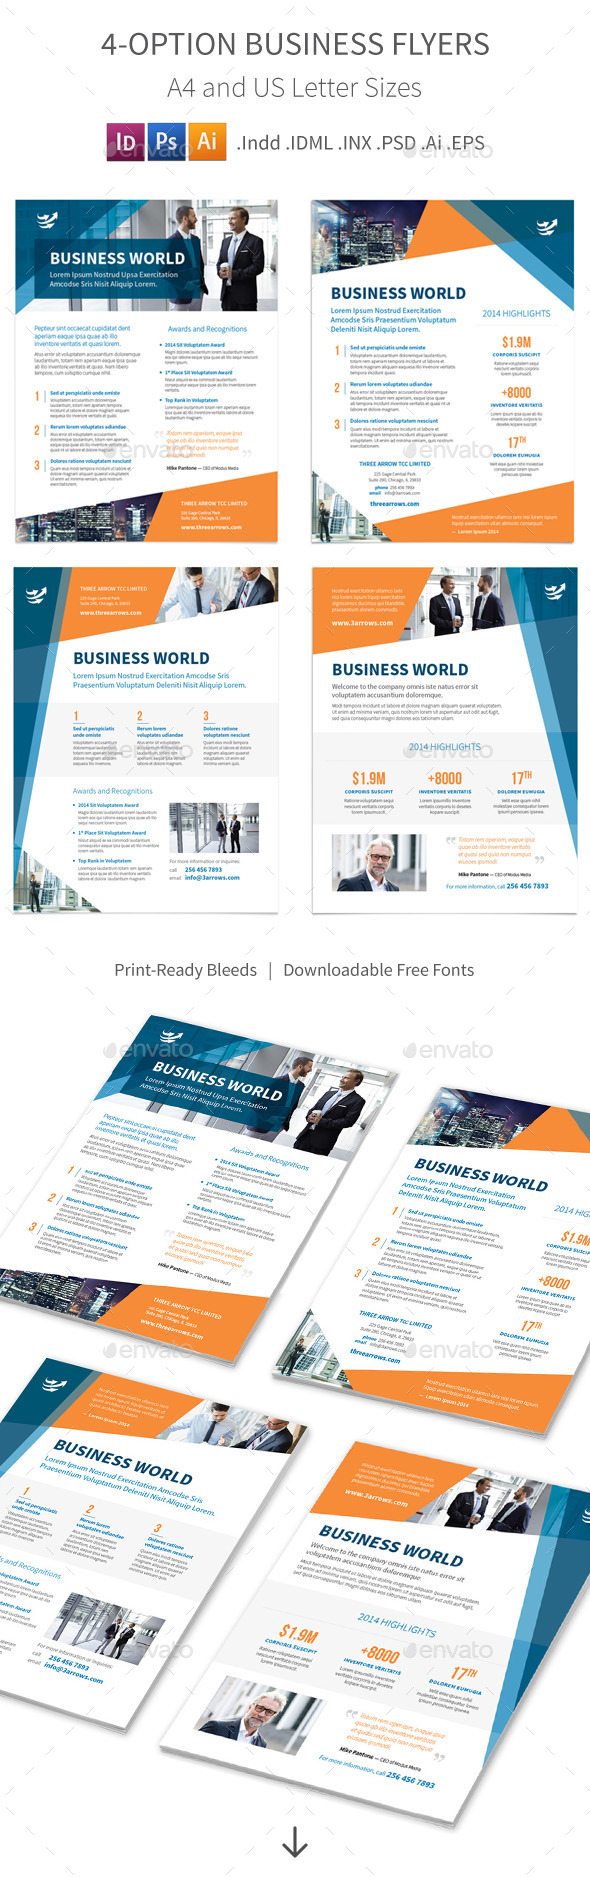 GraphicRiver Business Flyers 4 Options 9450990